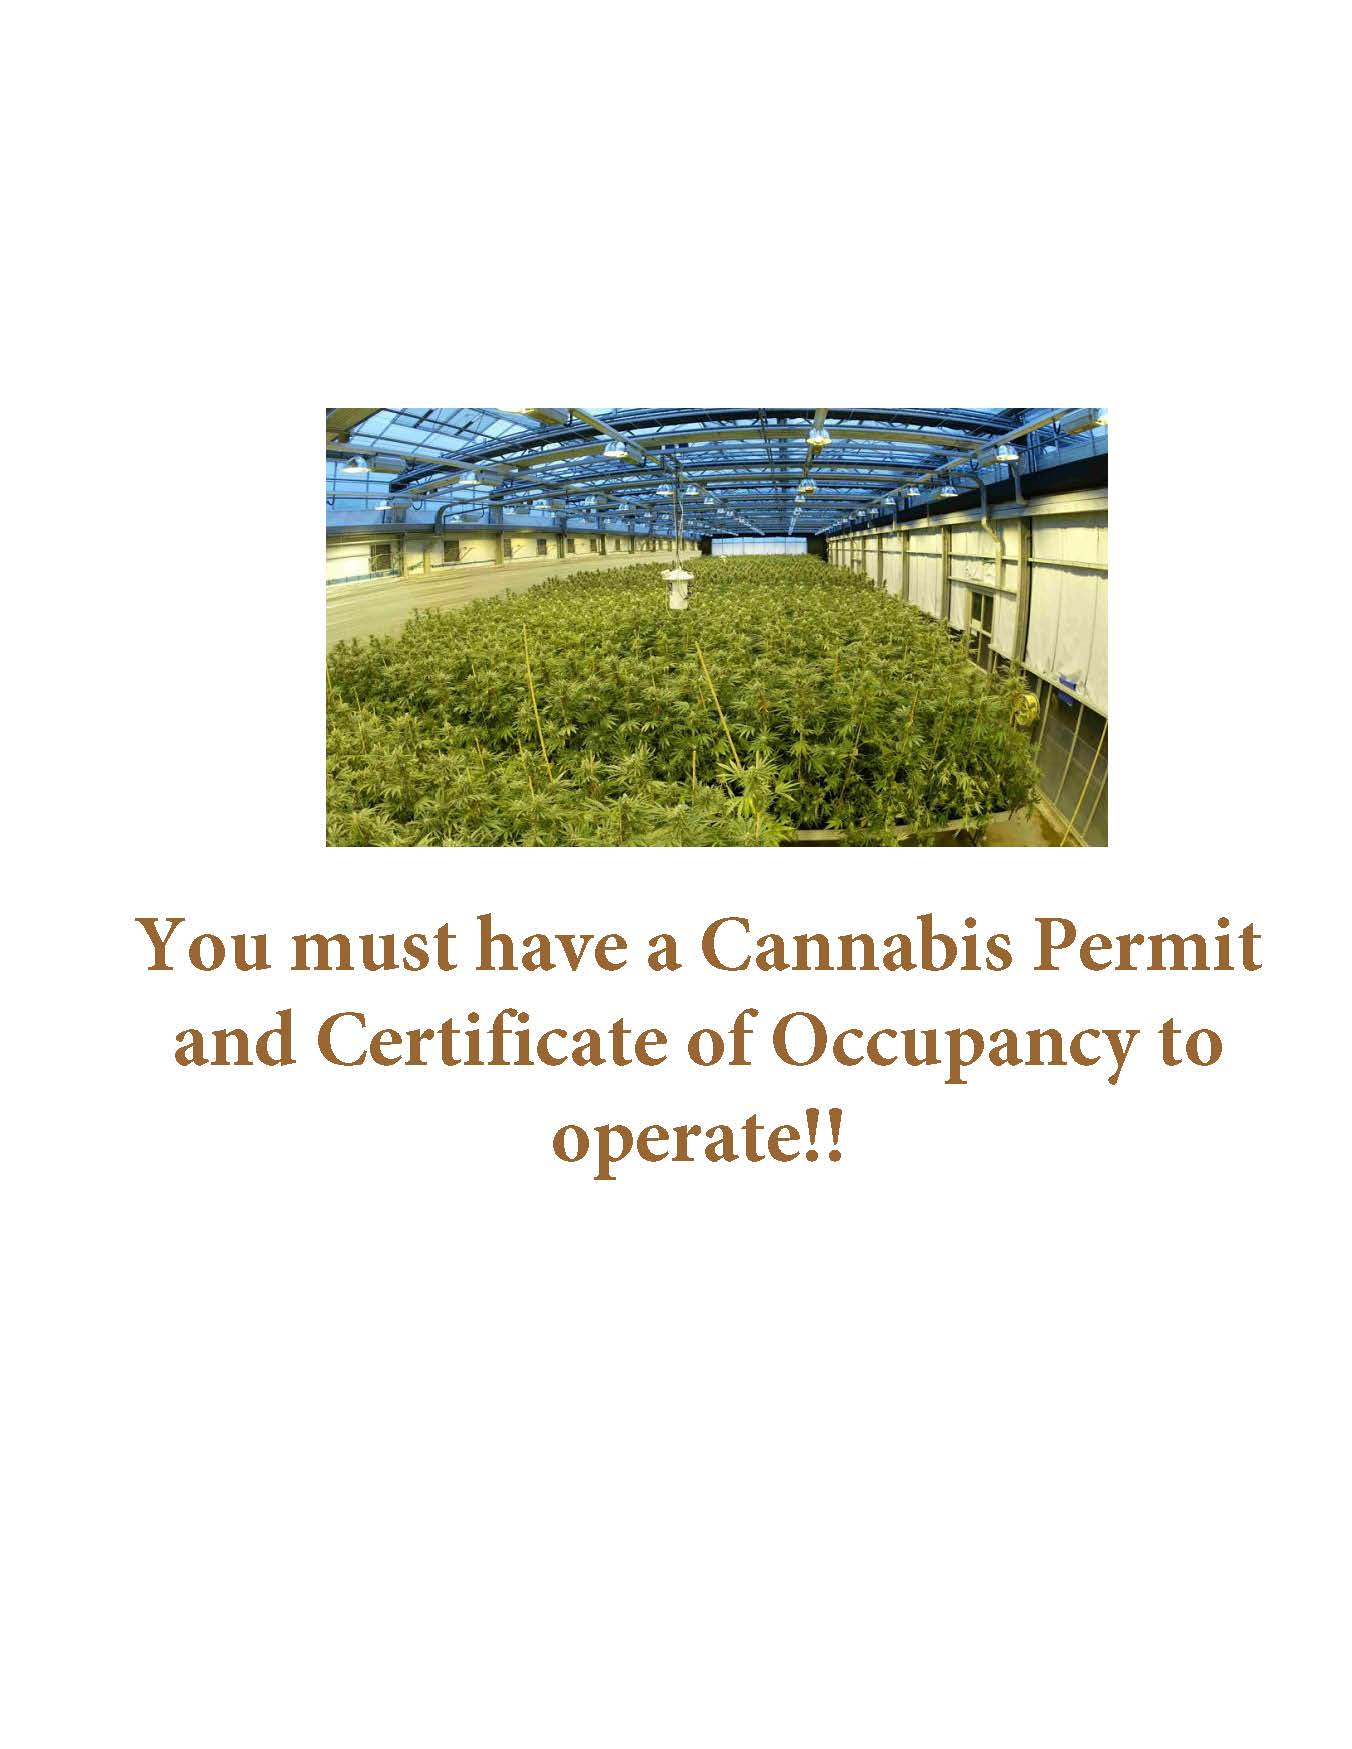 Must have Permit and CofO